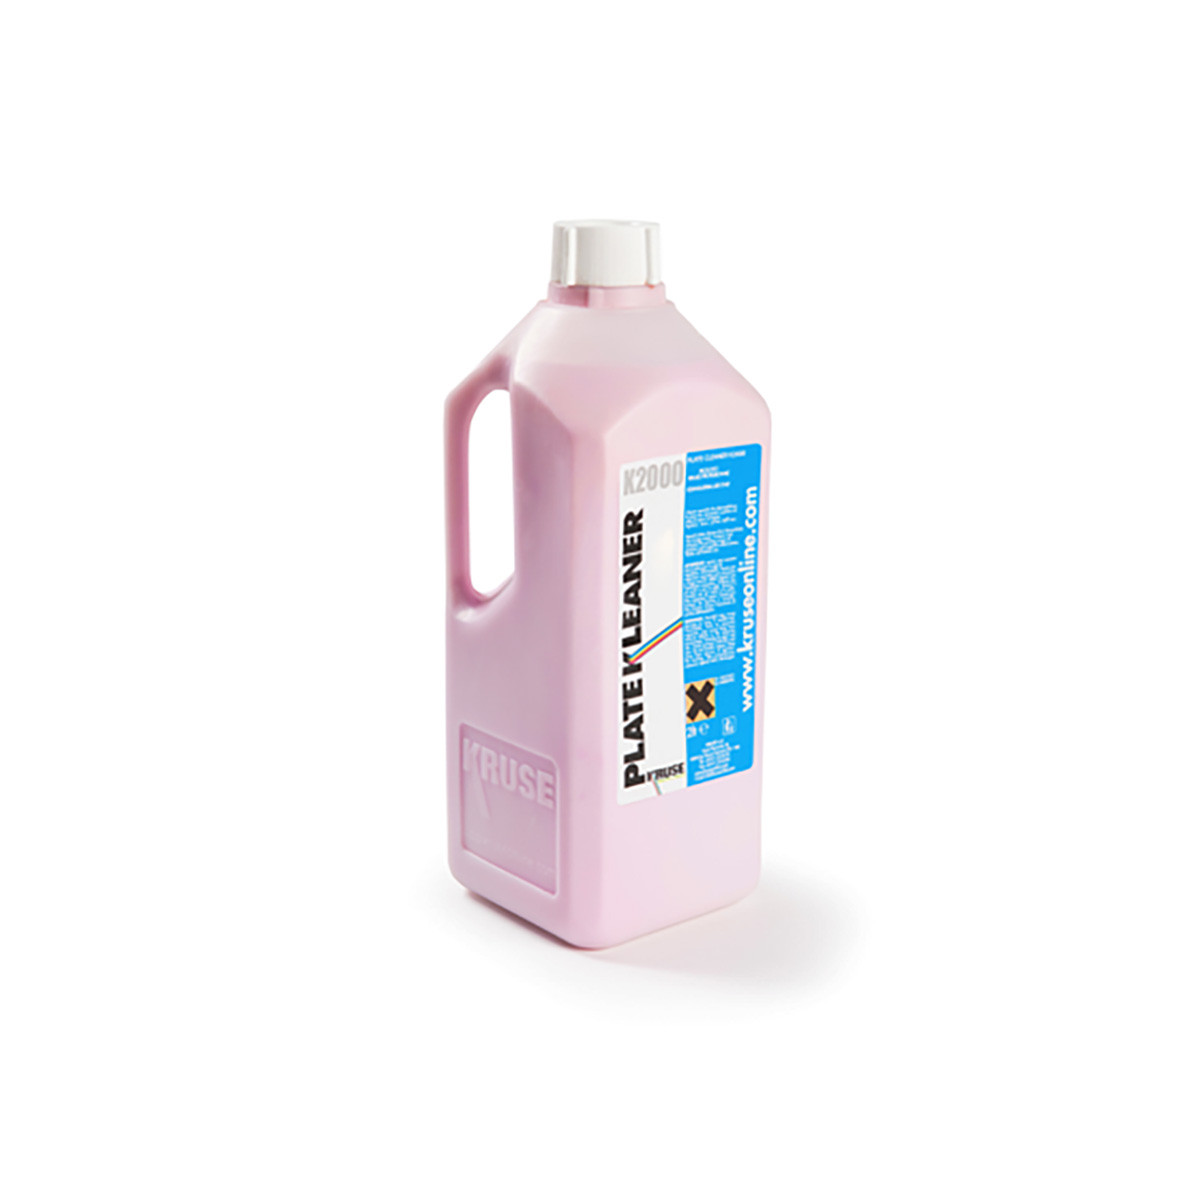 K 2000 PLATE CLEANER 1/2 l